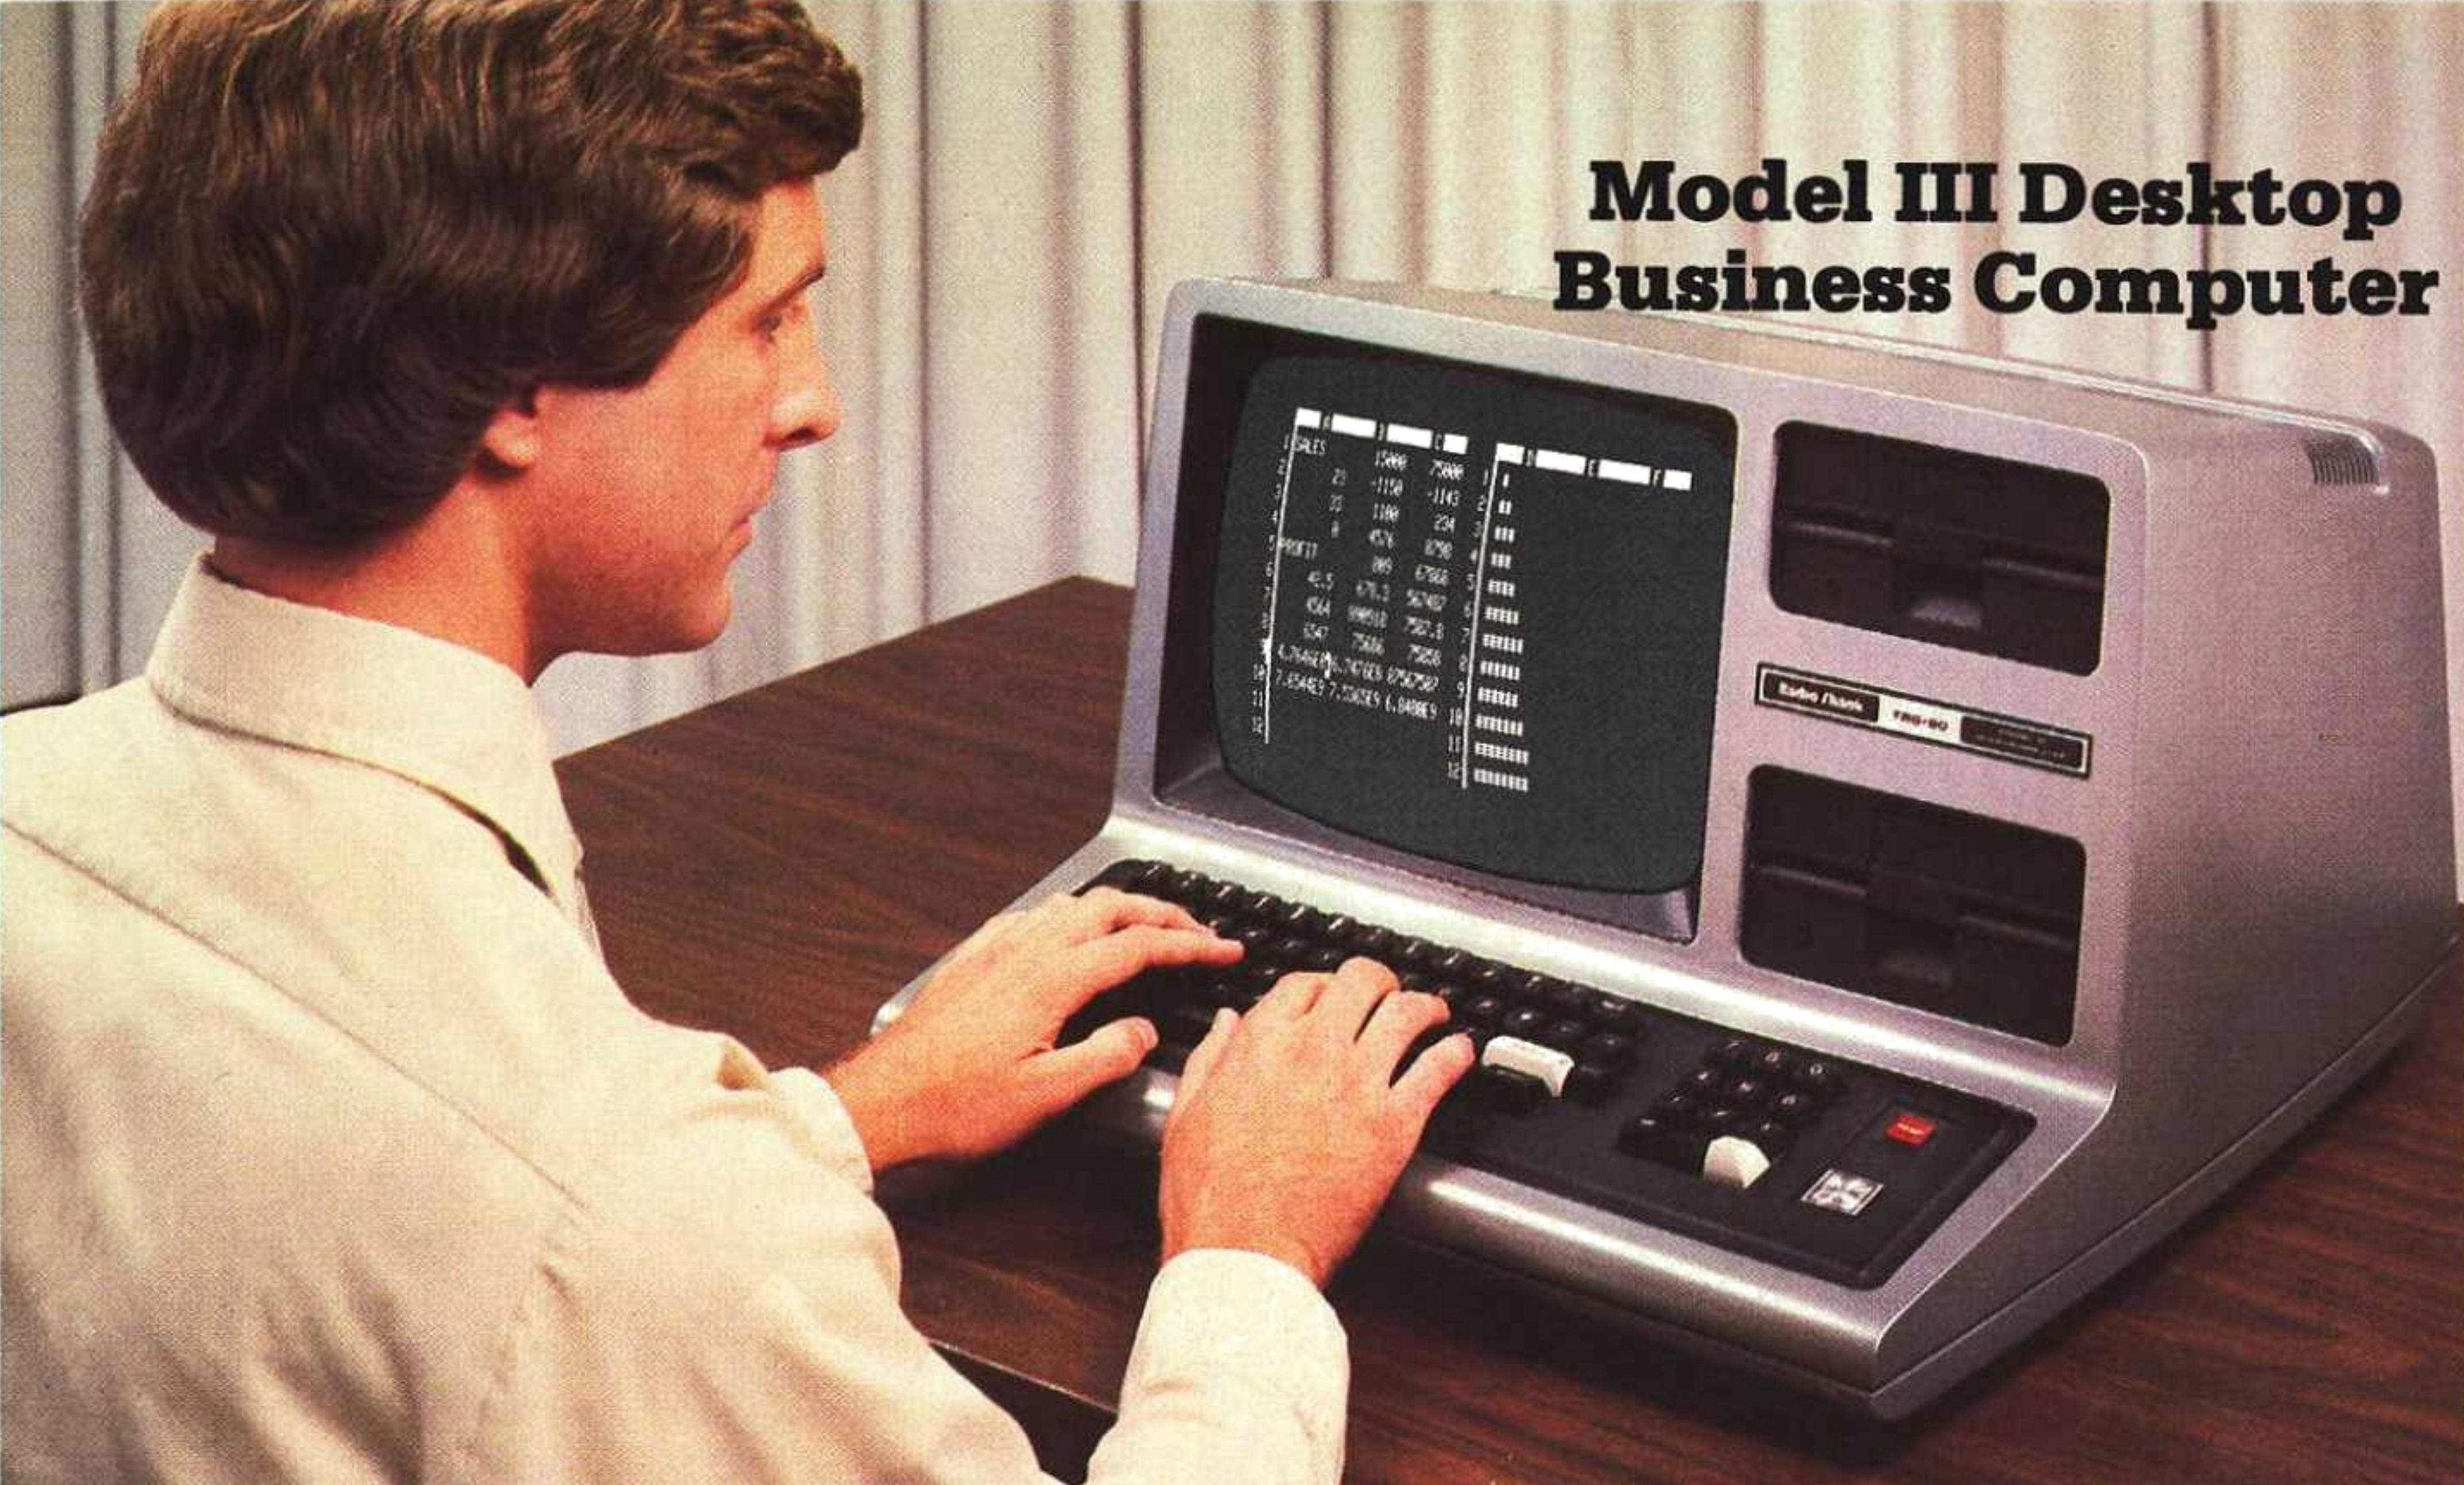 [Model III Business Desktop Computer]